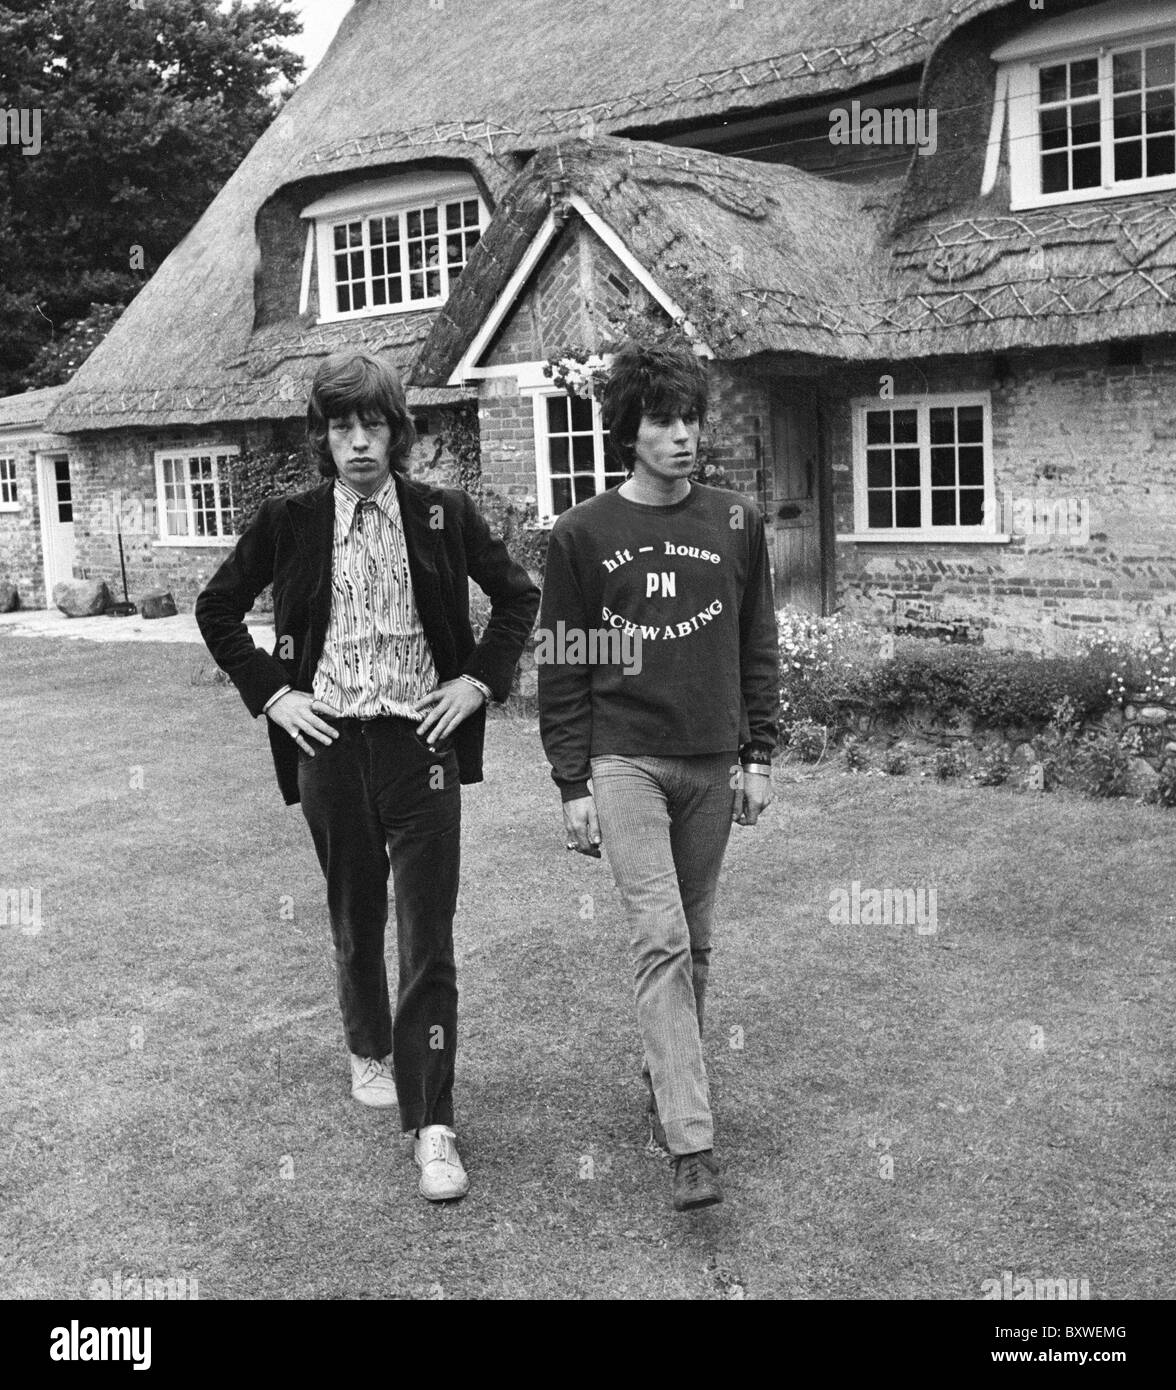 Keith Richards and Mick Jagger exclusive image from 1967 by David Cole in the gardens at Redlands. From the archives - Stock Image